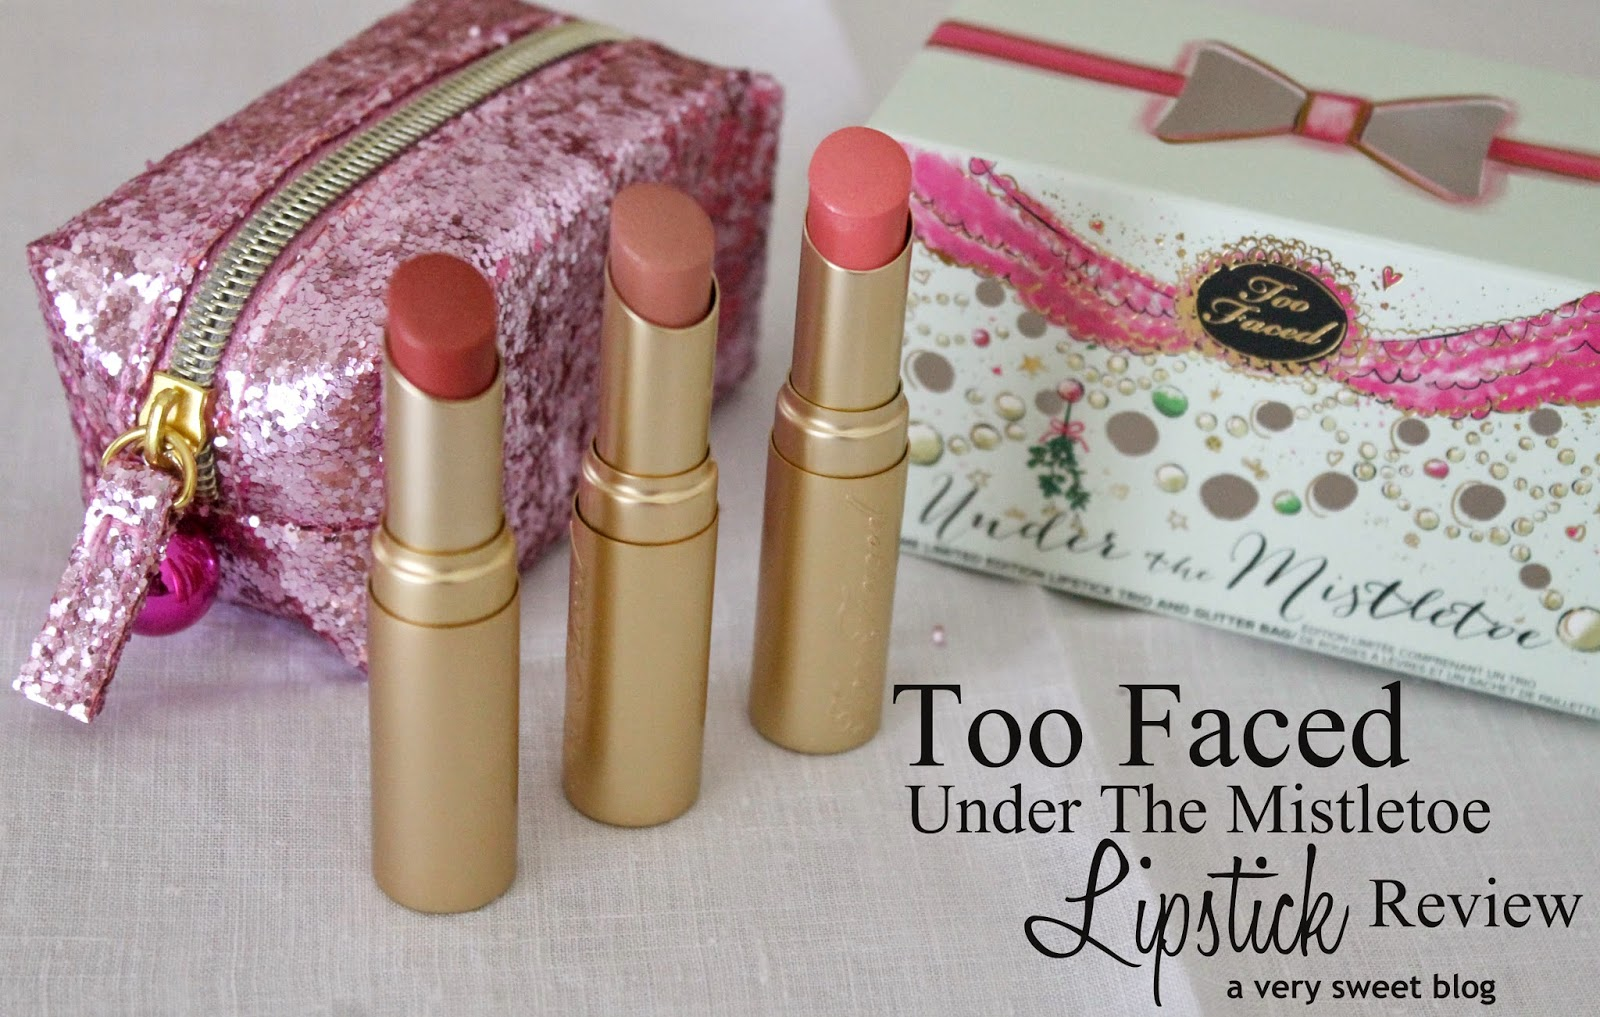 Well, if you kiss somebody under the mistletoe, don't use these! LOL This Too Faced Cosmetics Under The Mistletoe holiday lipstick set ($28), contains 3 full-sized lipsticks of their BEST SELLING shades! However, these are the SHIMMER and NOT LA CREME versions (I .